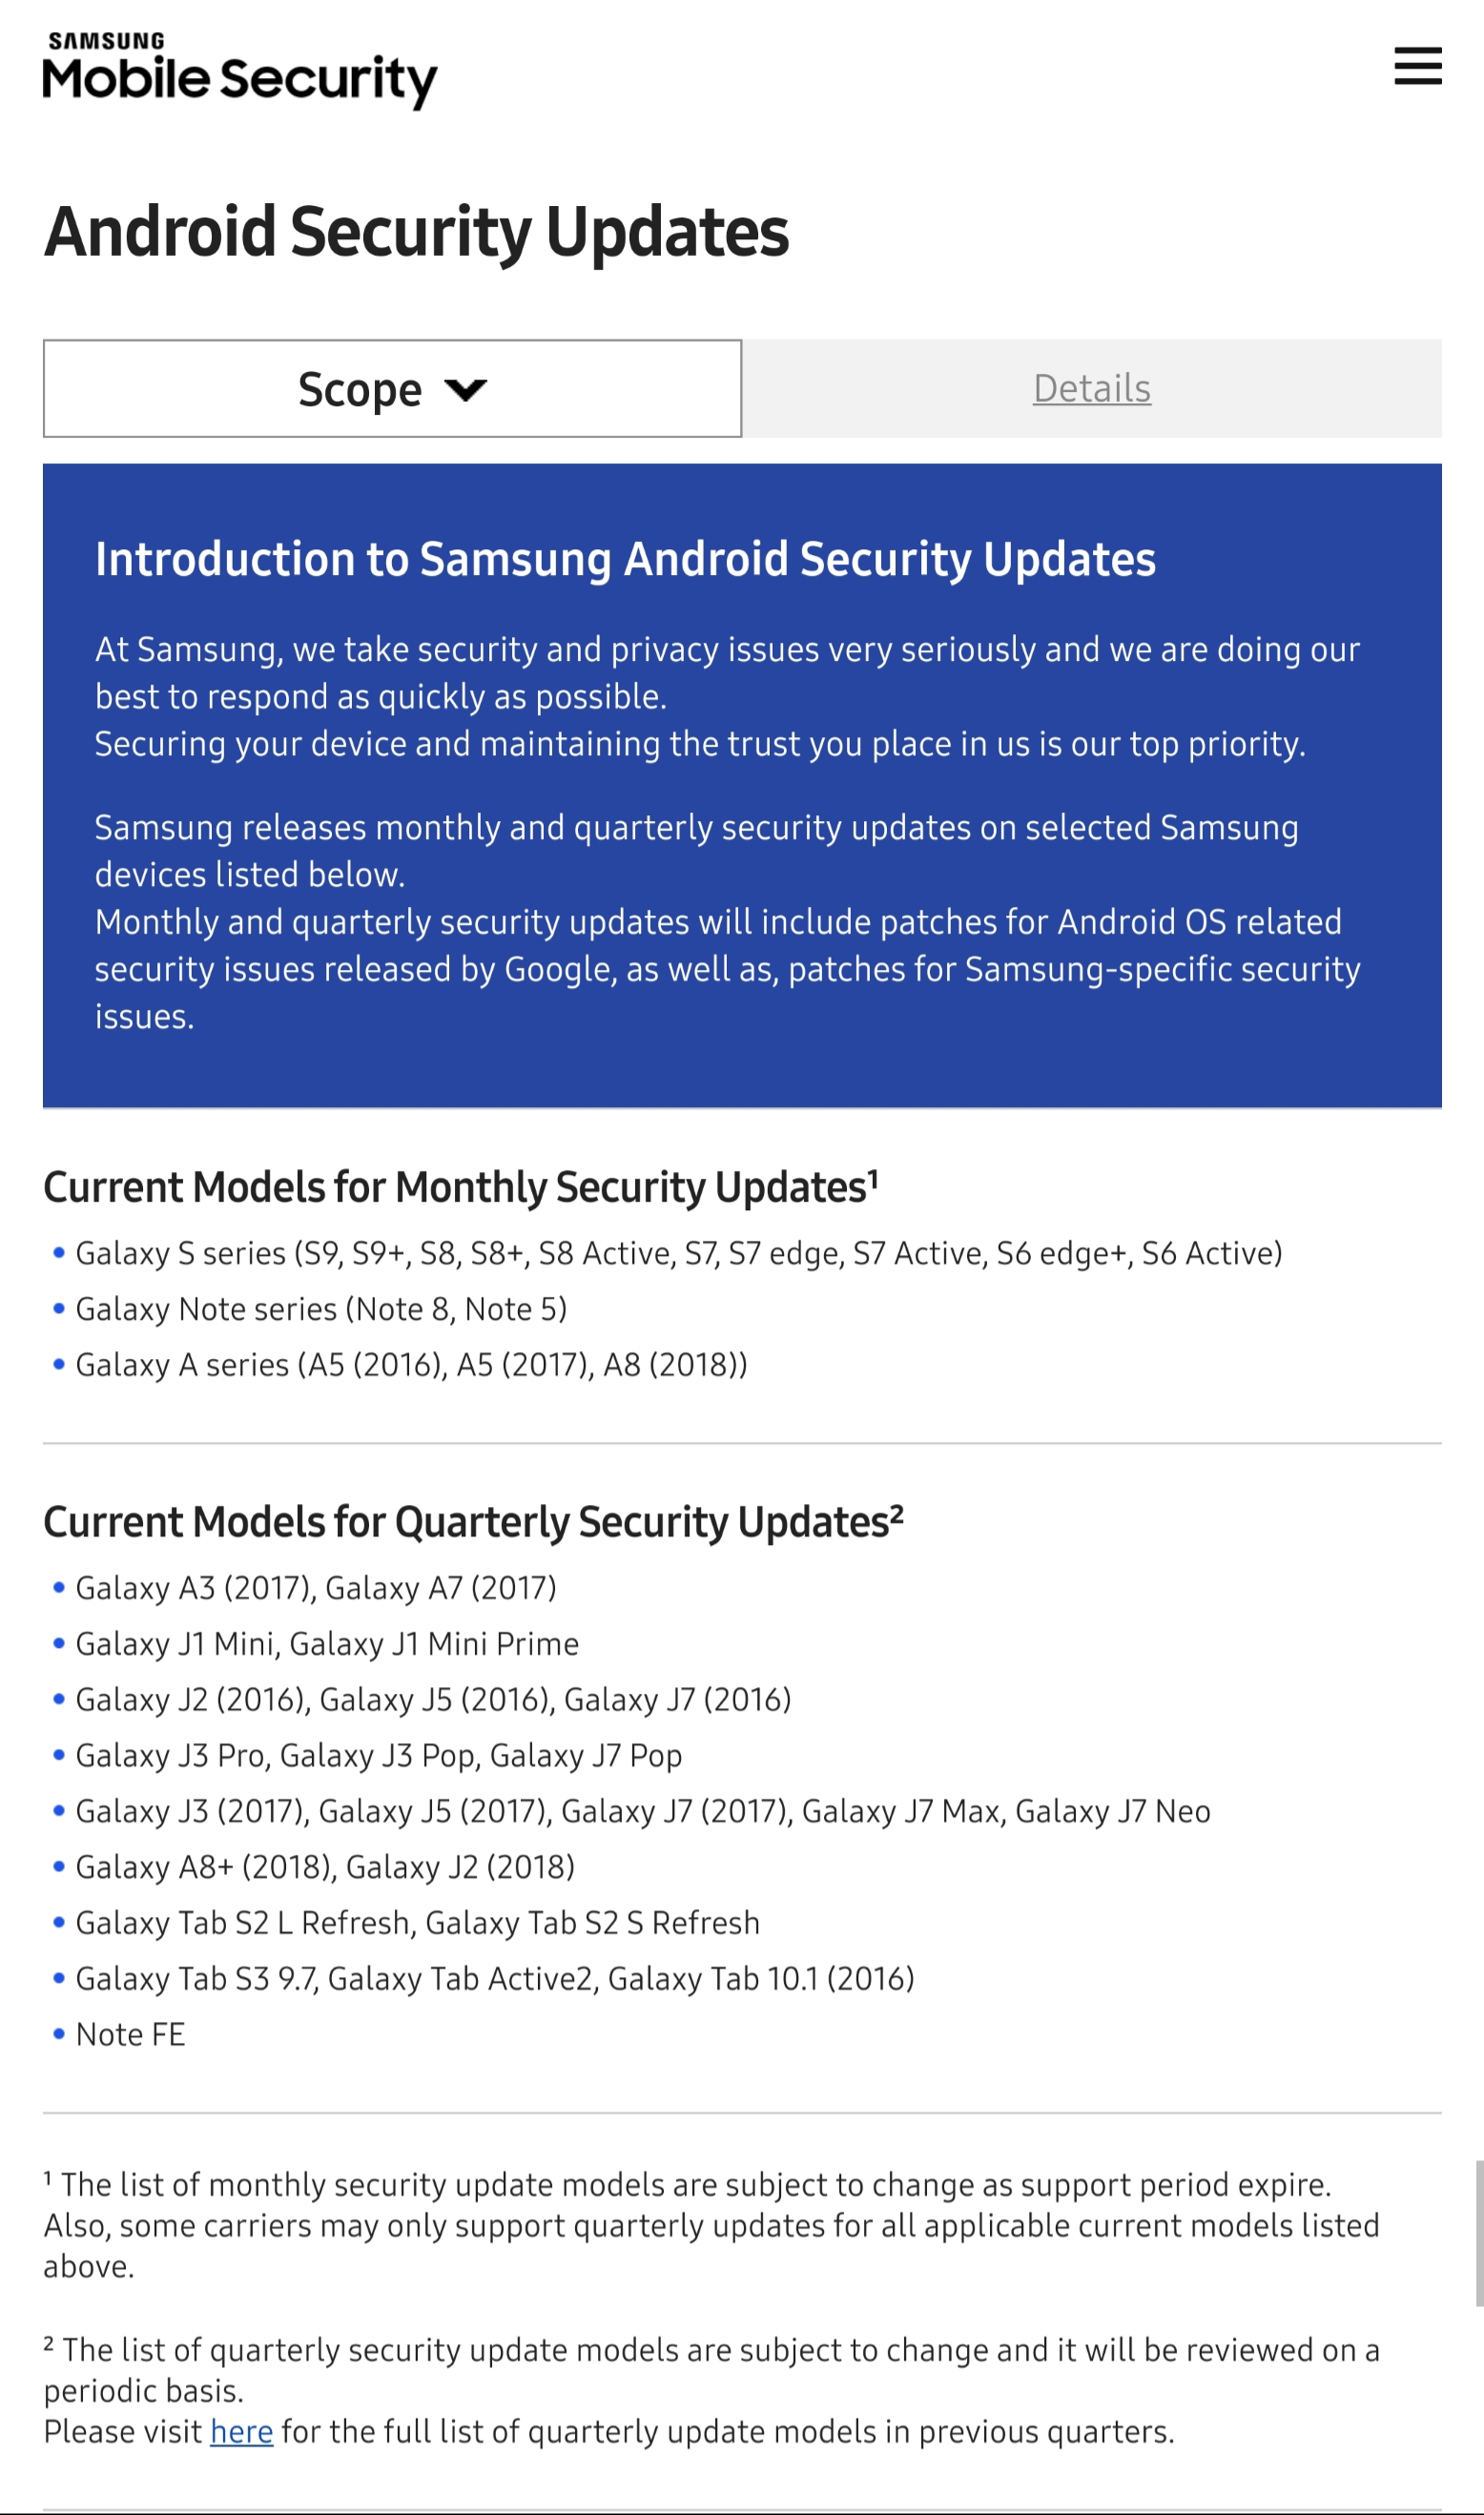 Samsung Mobile Security